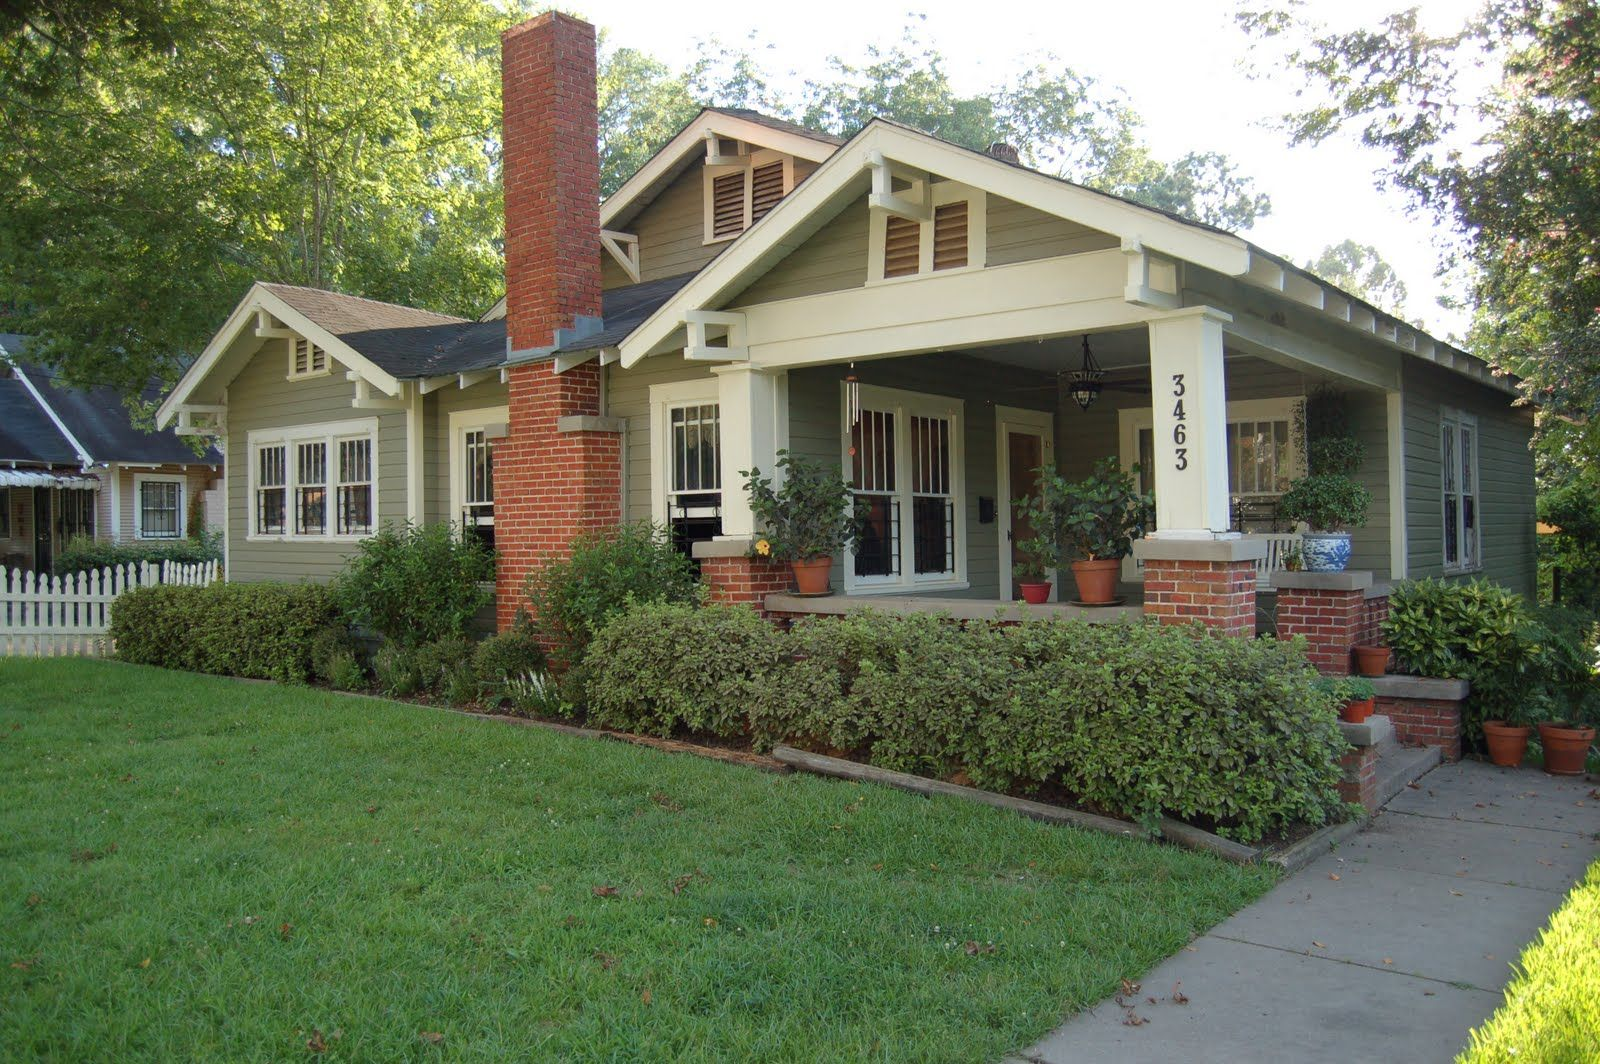 My Dream House Is Craftsman Style A Front Porch Historic Character Artisan Details With L Bungalow Style House Craftsman Style Bungalow Craftsman Bungalows